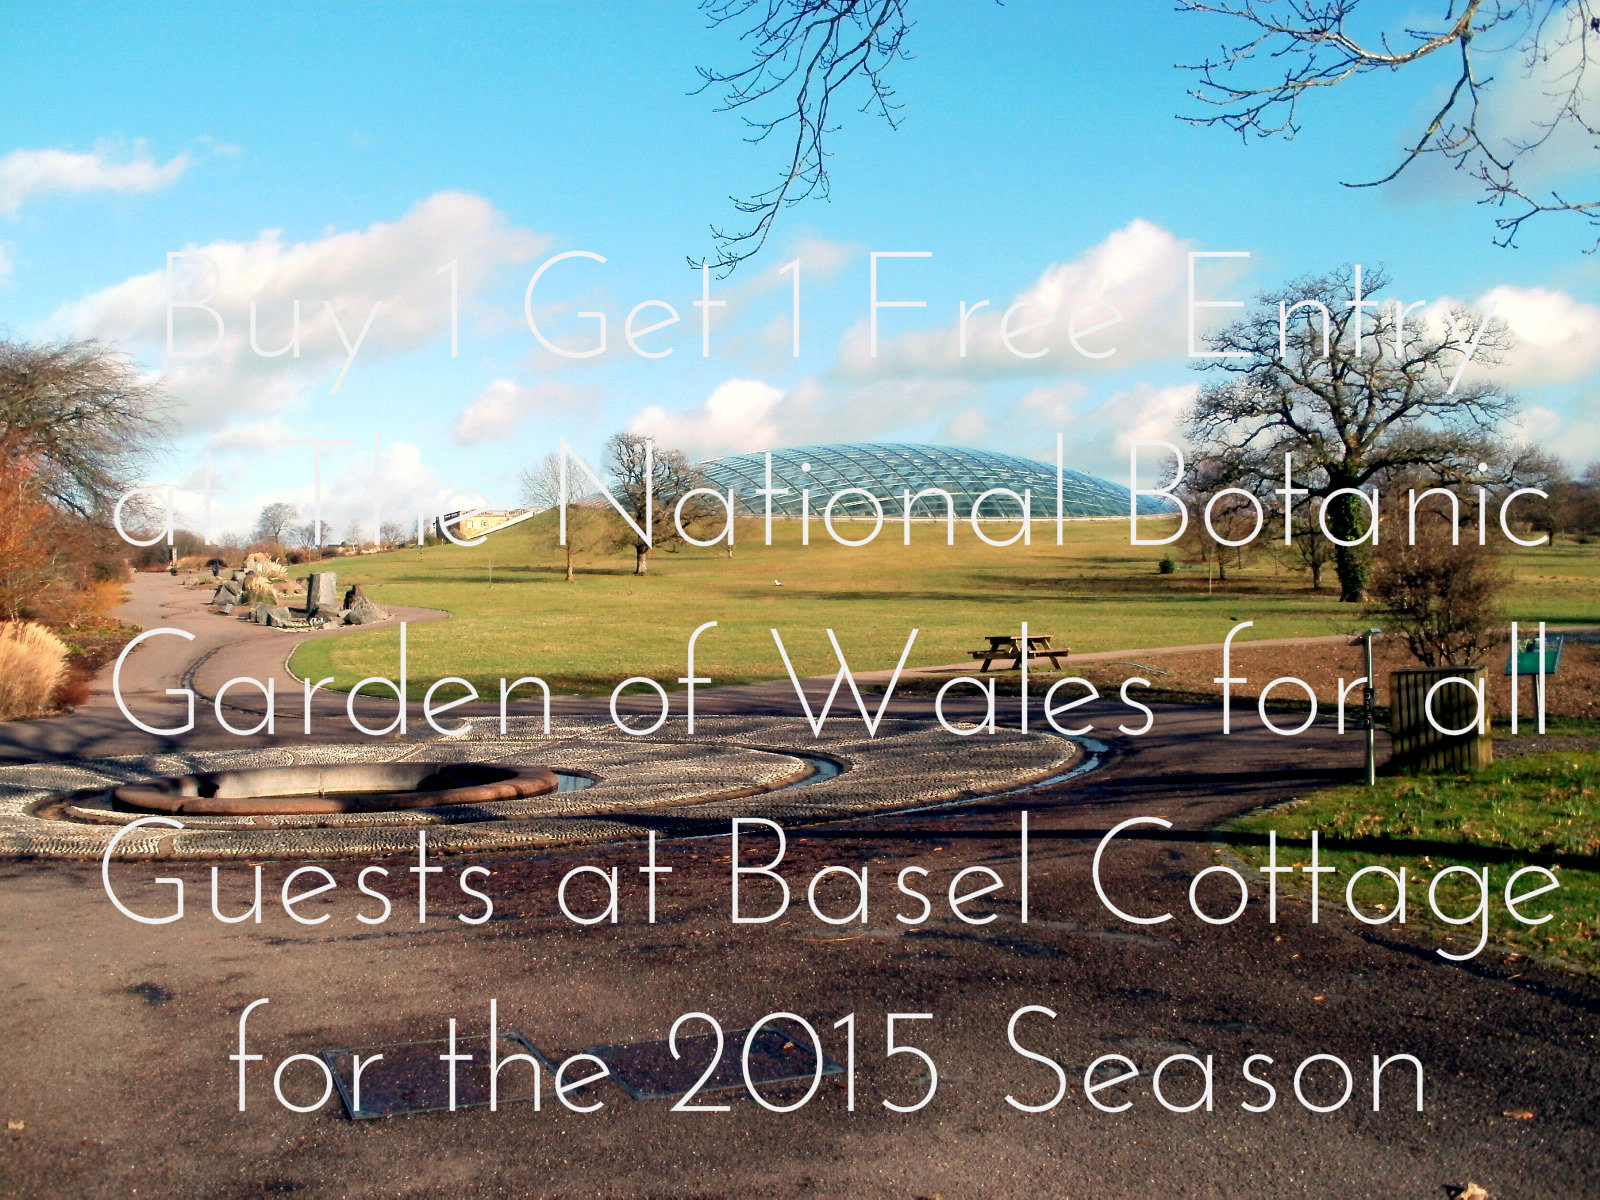 Special Offers at The National Botanic Garden of Wales for Guests at Basel Holiday Cottage in Llandovery, Carmarthenshire